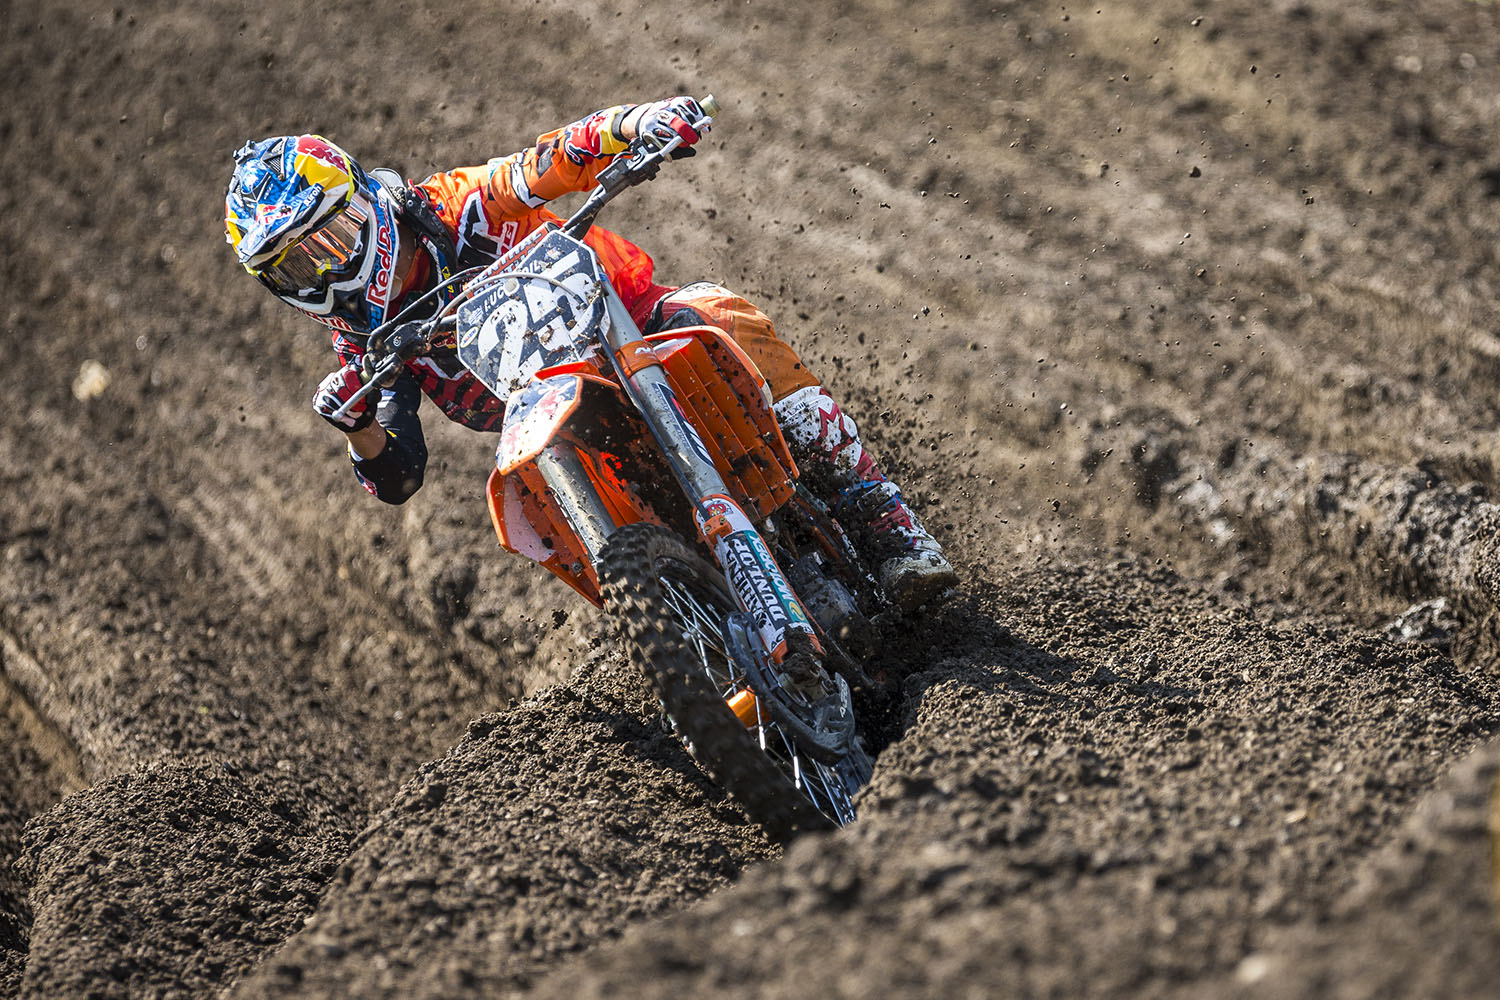 Marvin Musquin competes in the AMA Pro Motocross Championships at Unadilla Valley Sports Center in New Berlin, New York on August 9th, 2014.